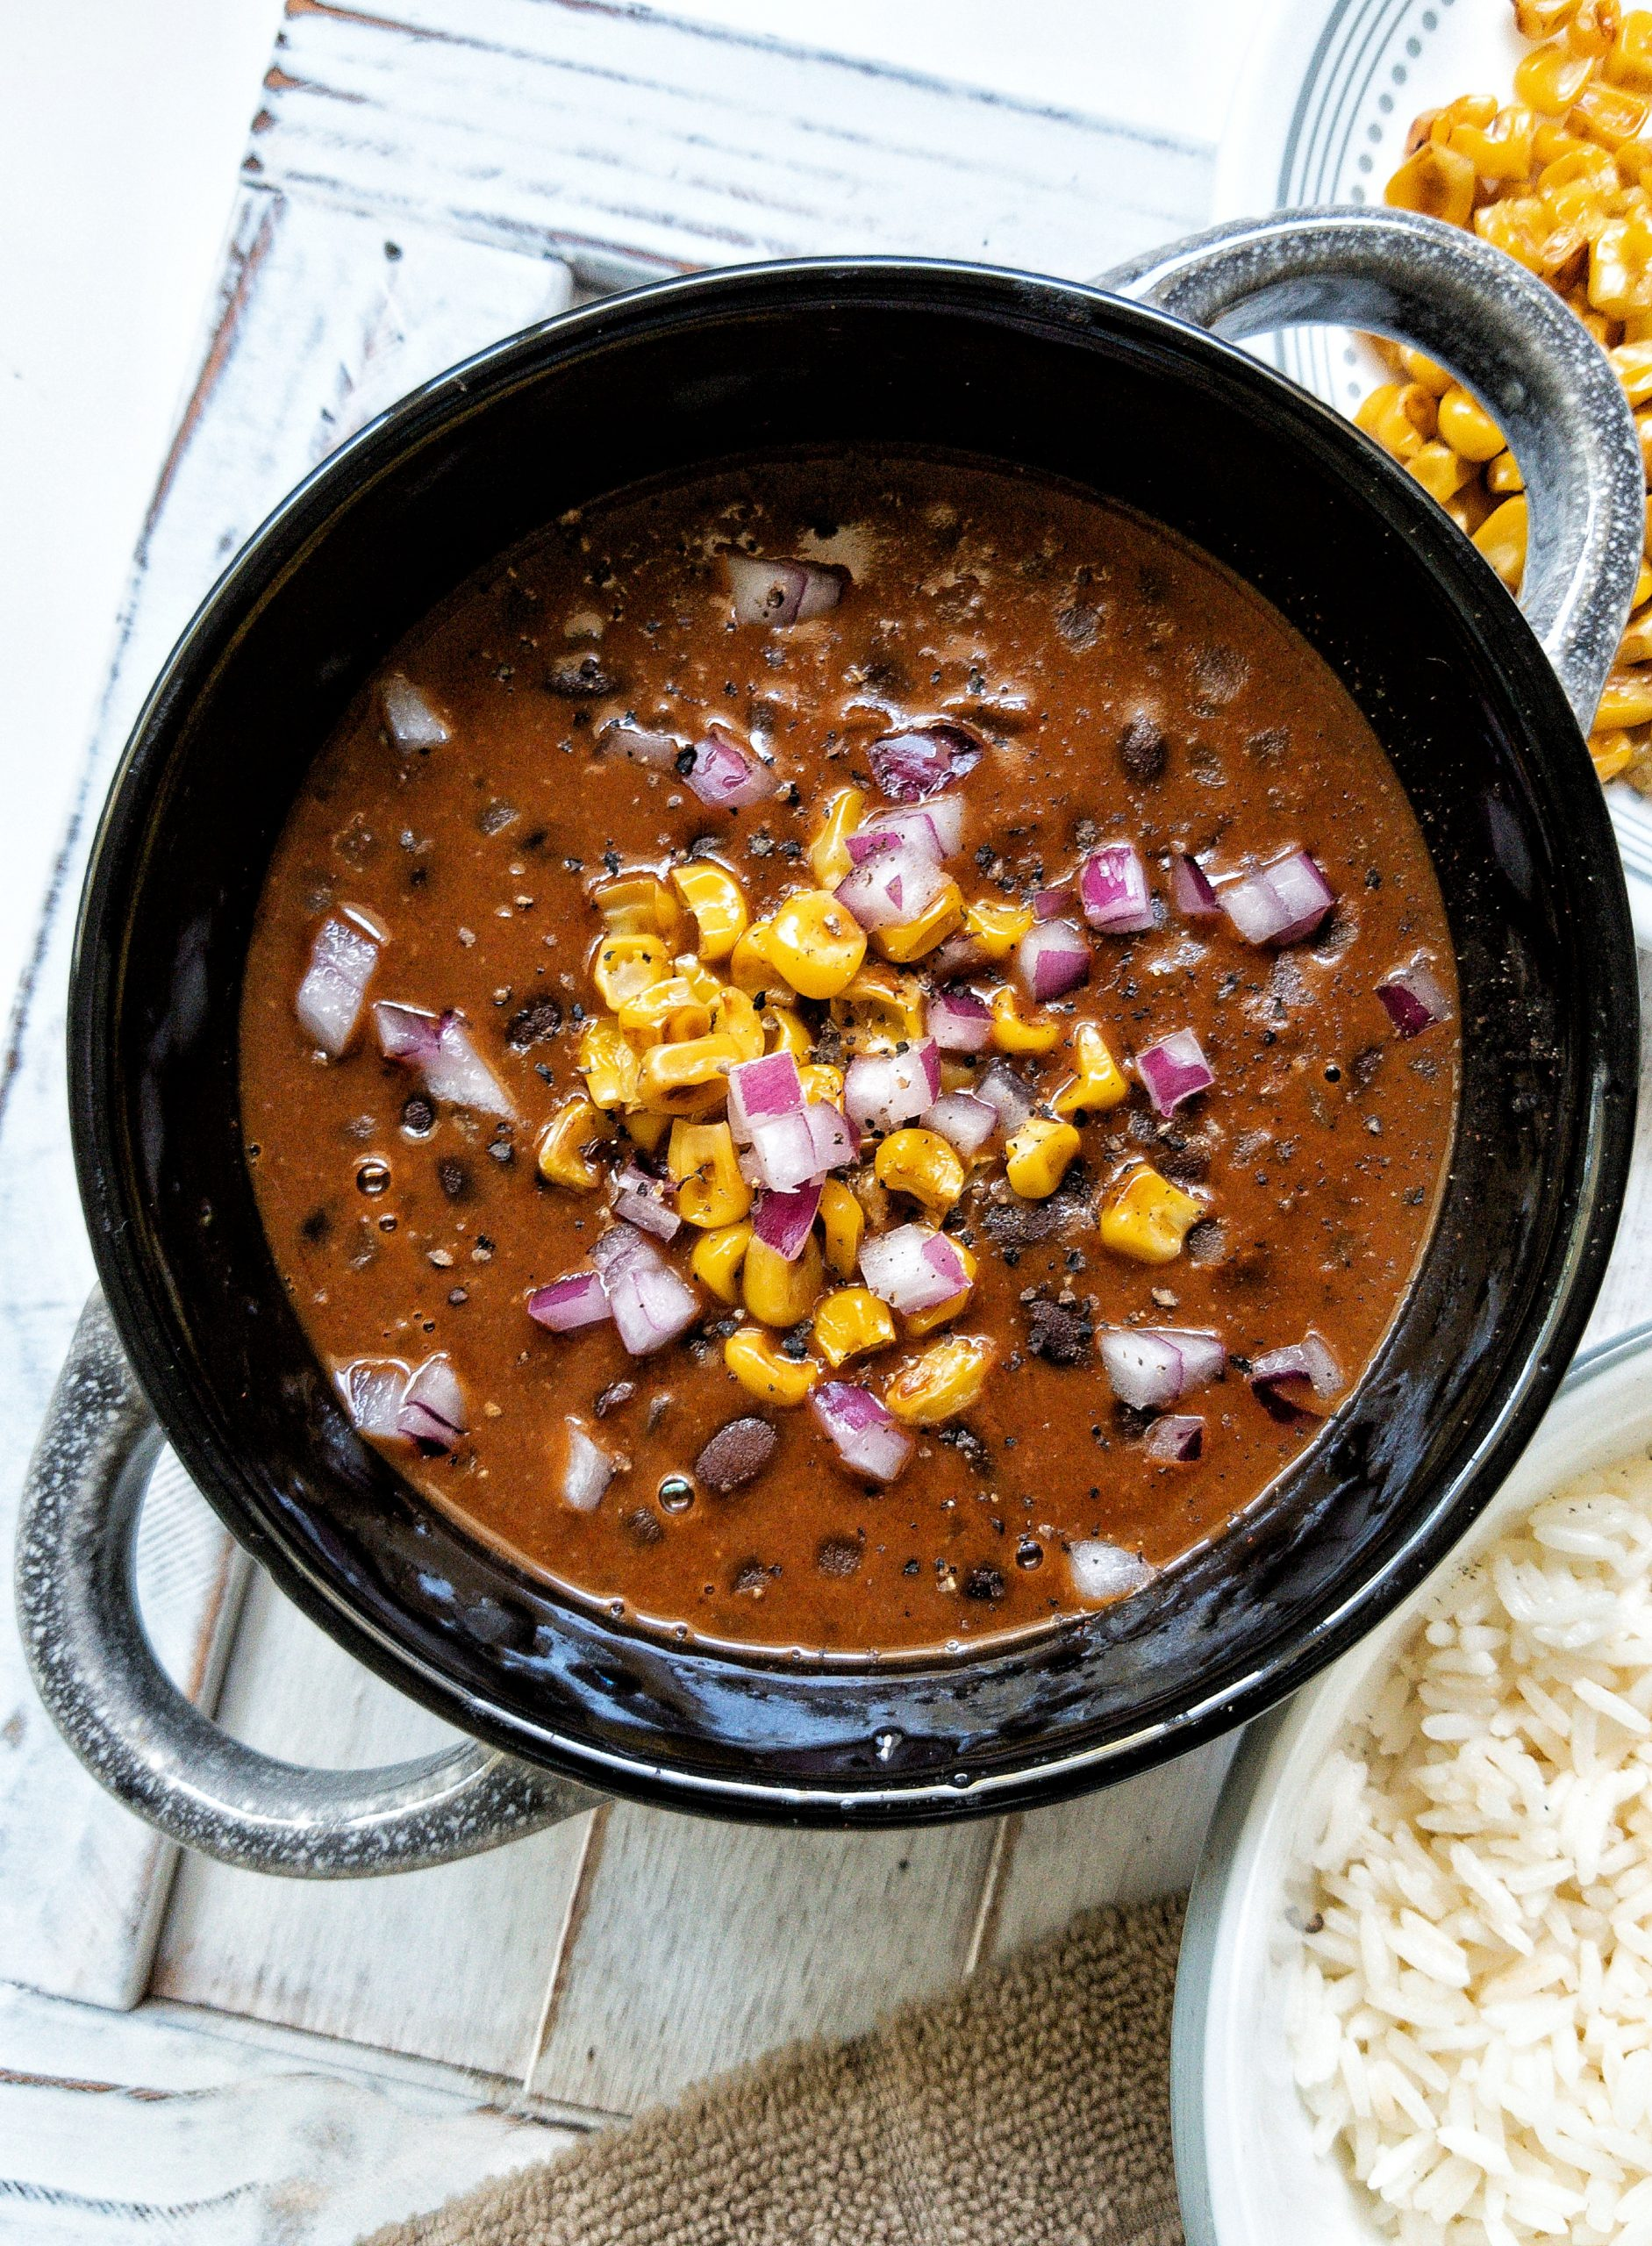 Black bean soup in a black bowl topped with pan-roasted corn, chopped red onions, and cracked black pepper